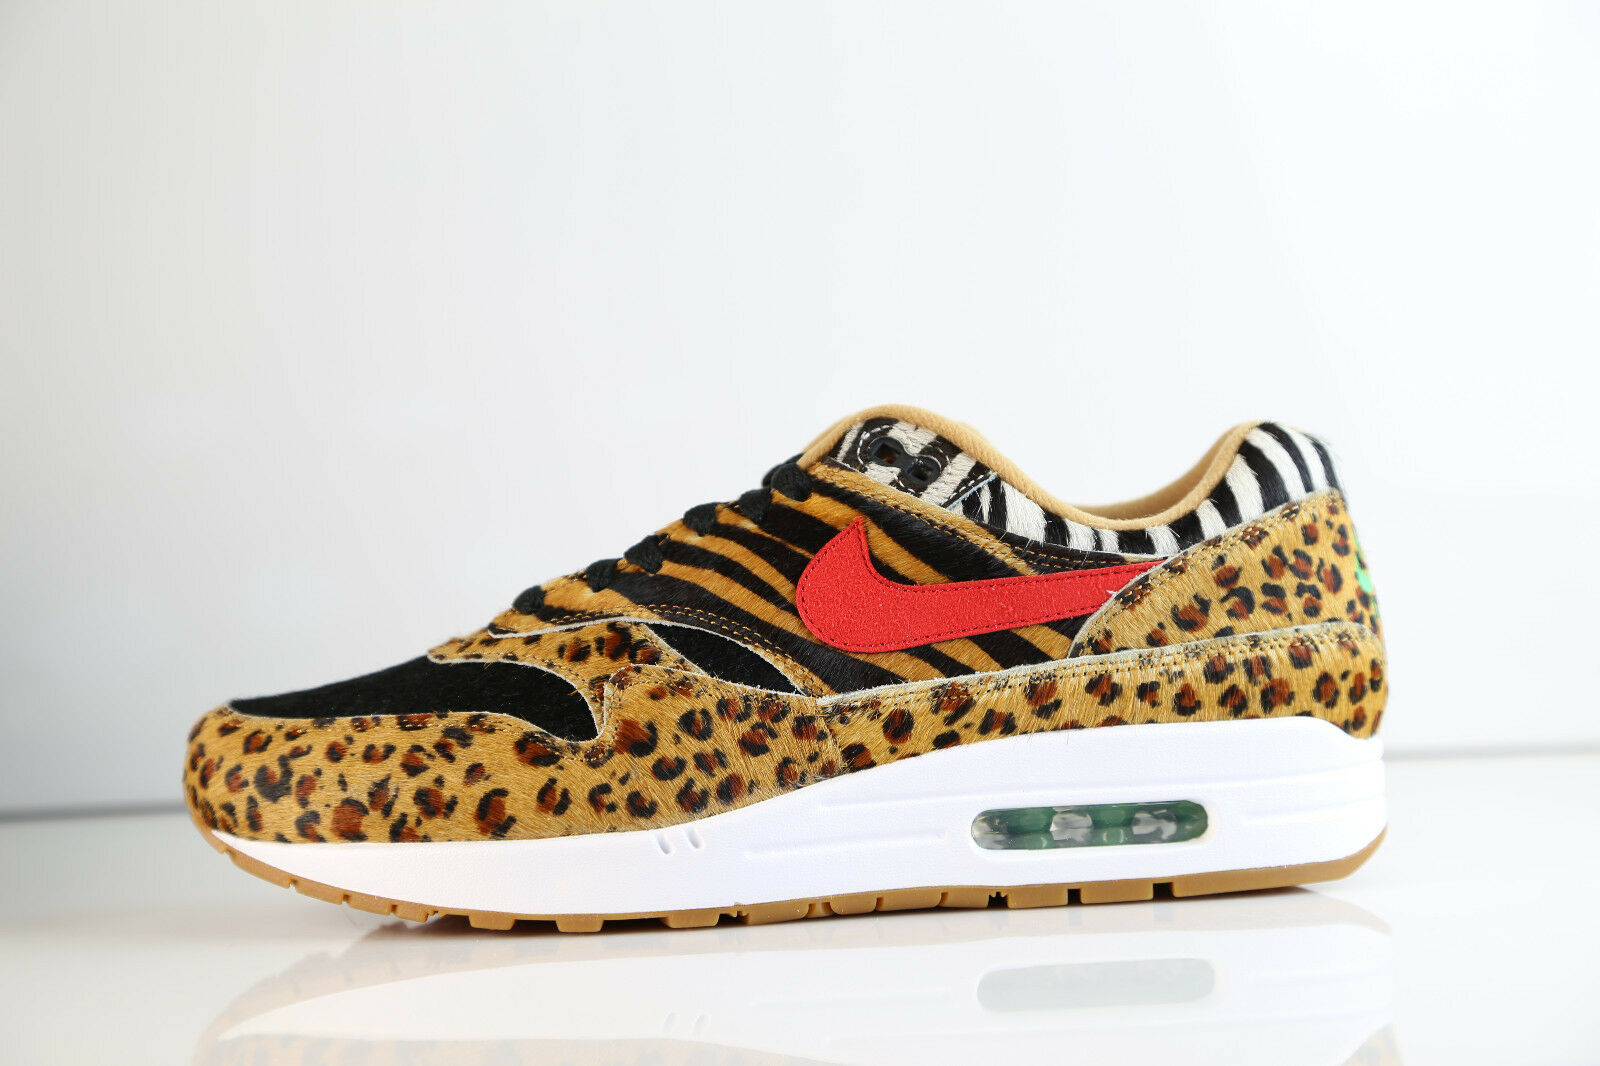 Nike Air Max 1 DLX Animal Atmos Wheat Sport Red AQ0928-700 8-11.5 90 1 3